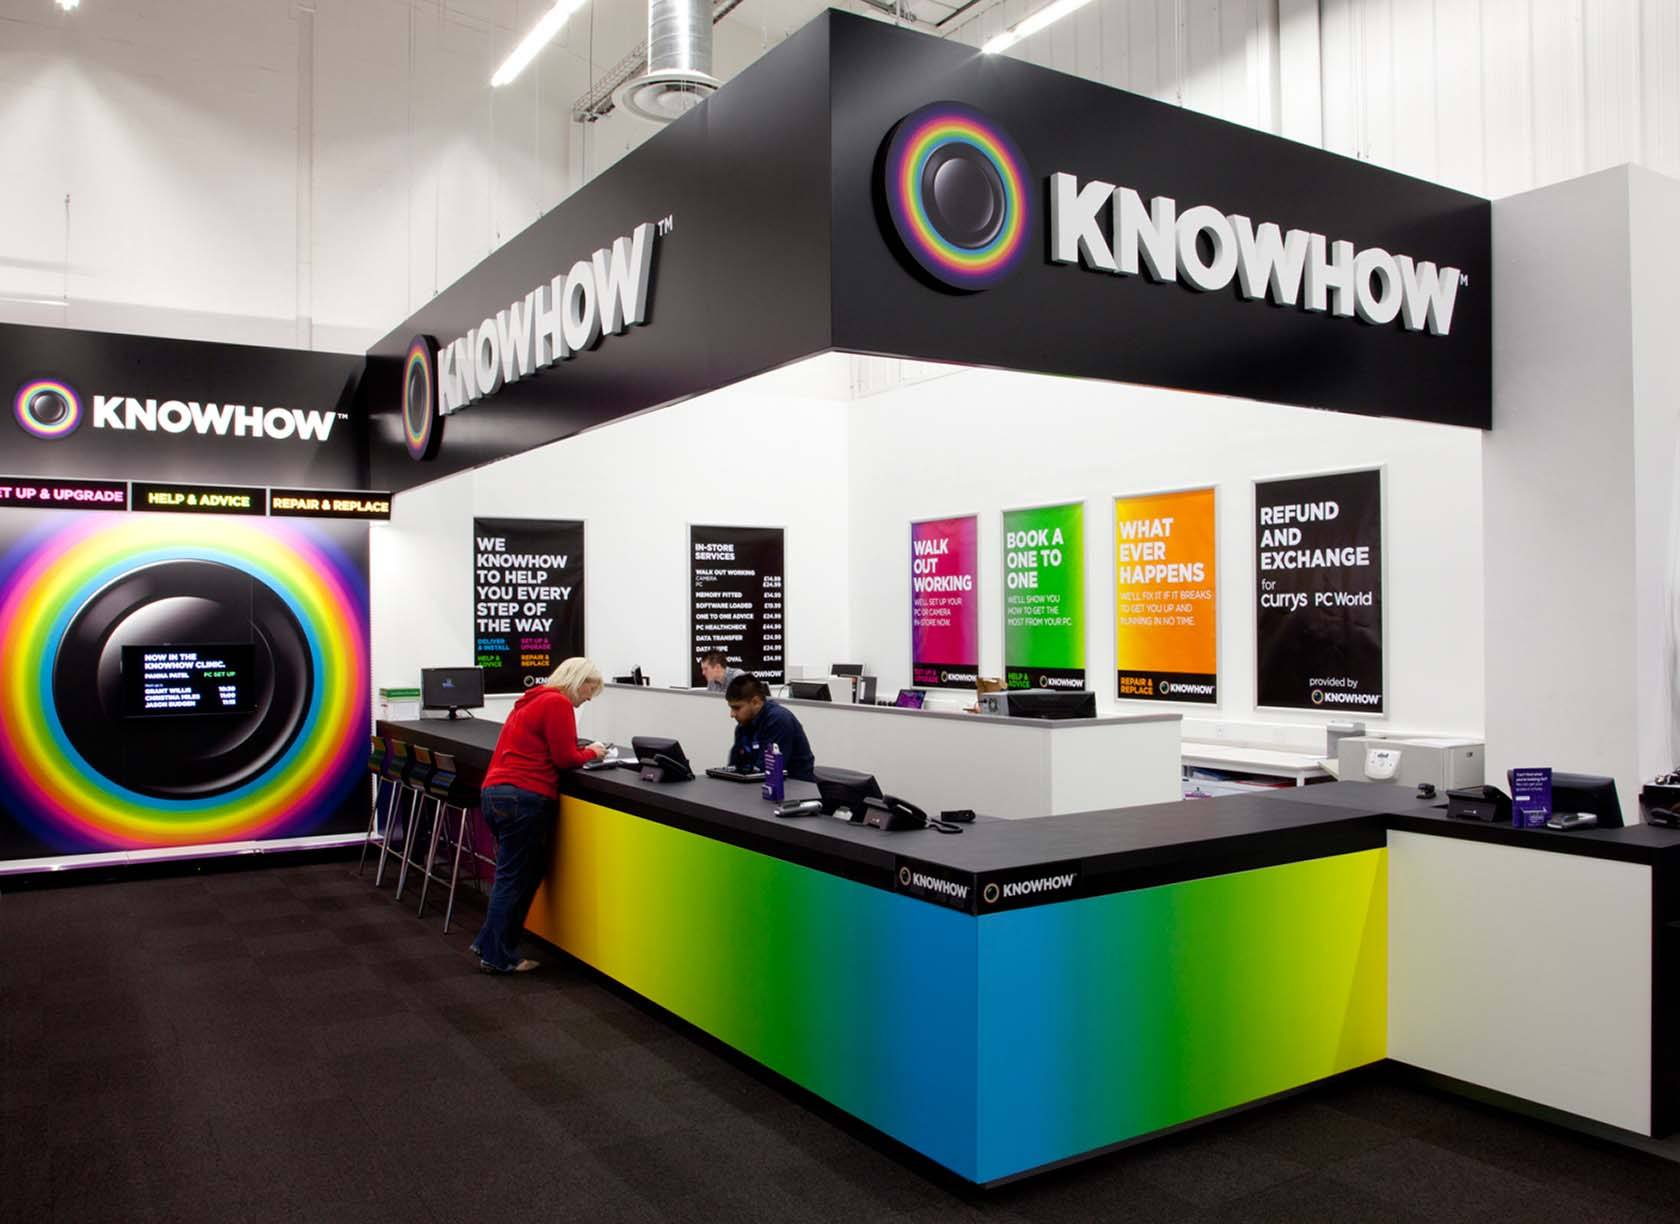 WMH-KNOWHOW-INSTORE-WEB image